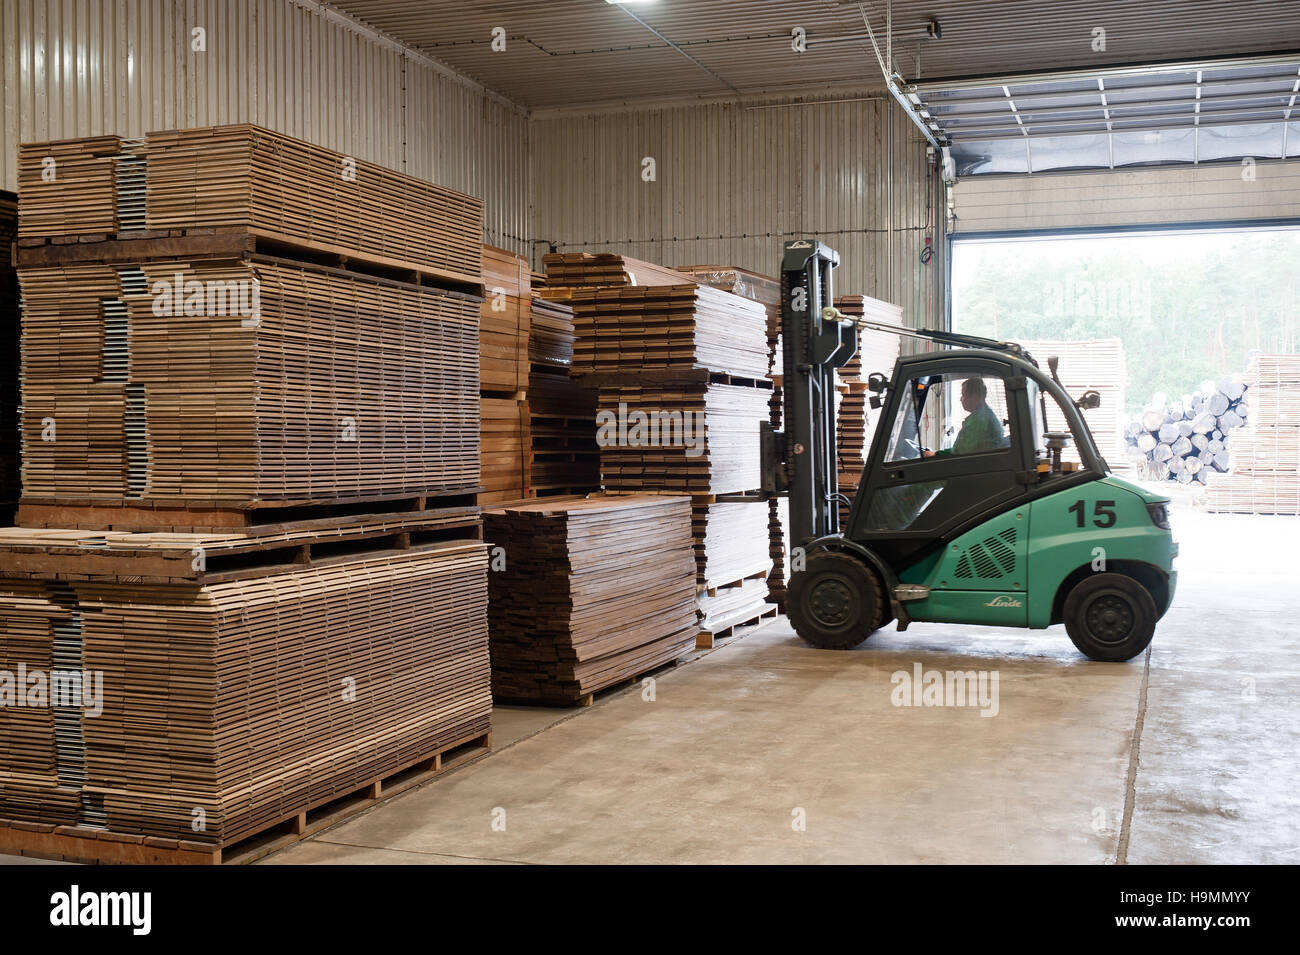 timber processing plant, Templin, Uckermark district of Brandenurg, Germany. - Stock Image